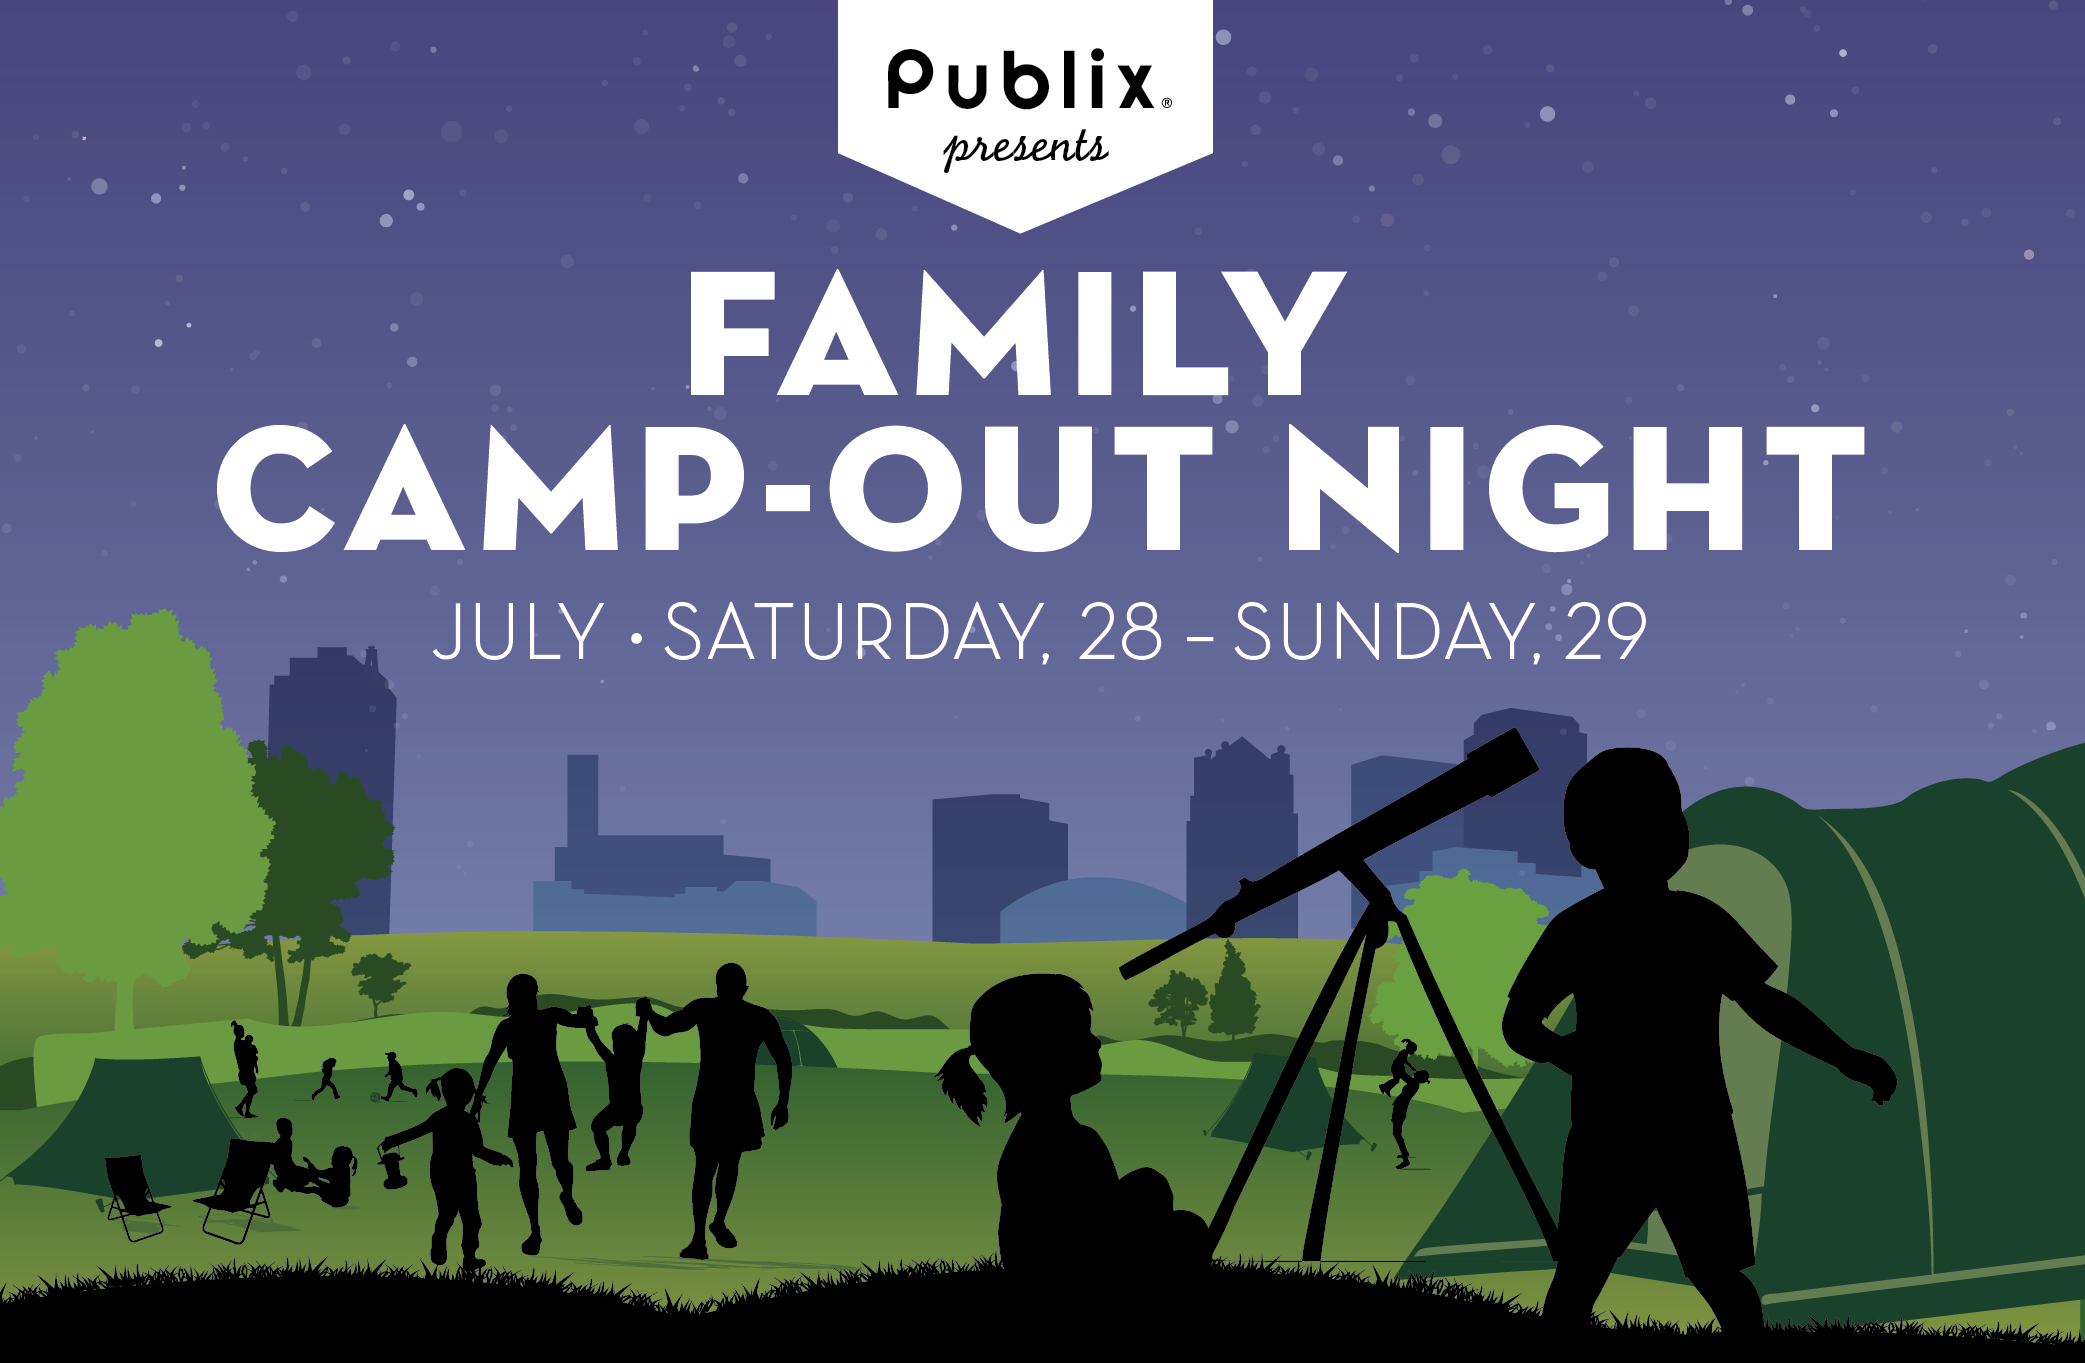 Railroad Park Family Camp Out Night Presented by Publix Supermarkets, Inc.